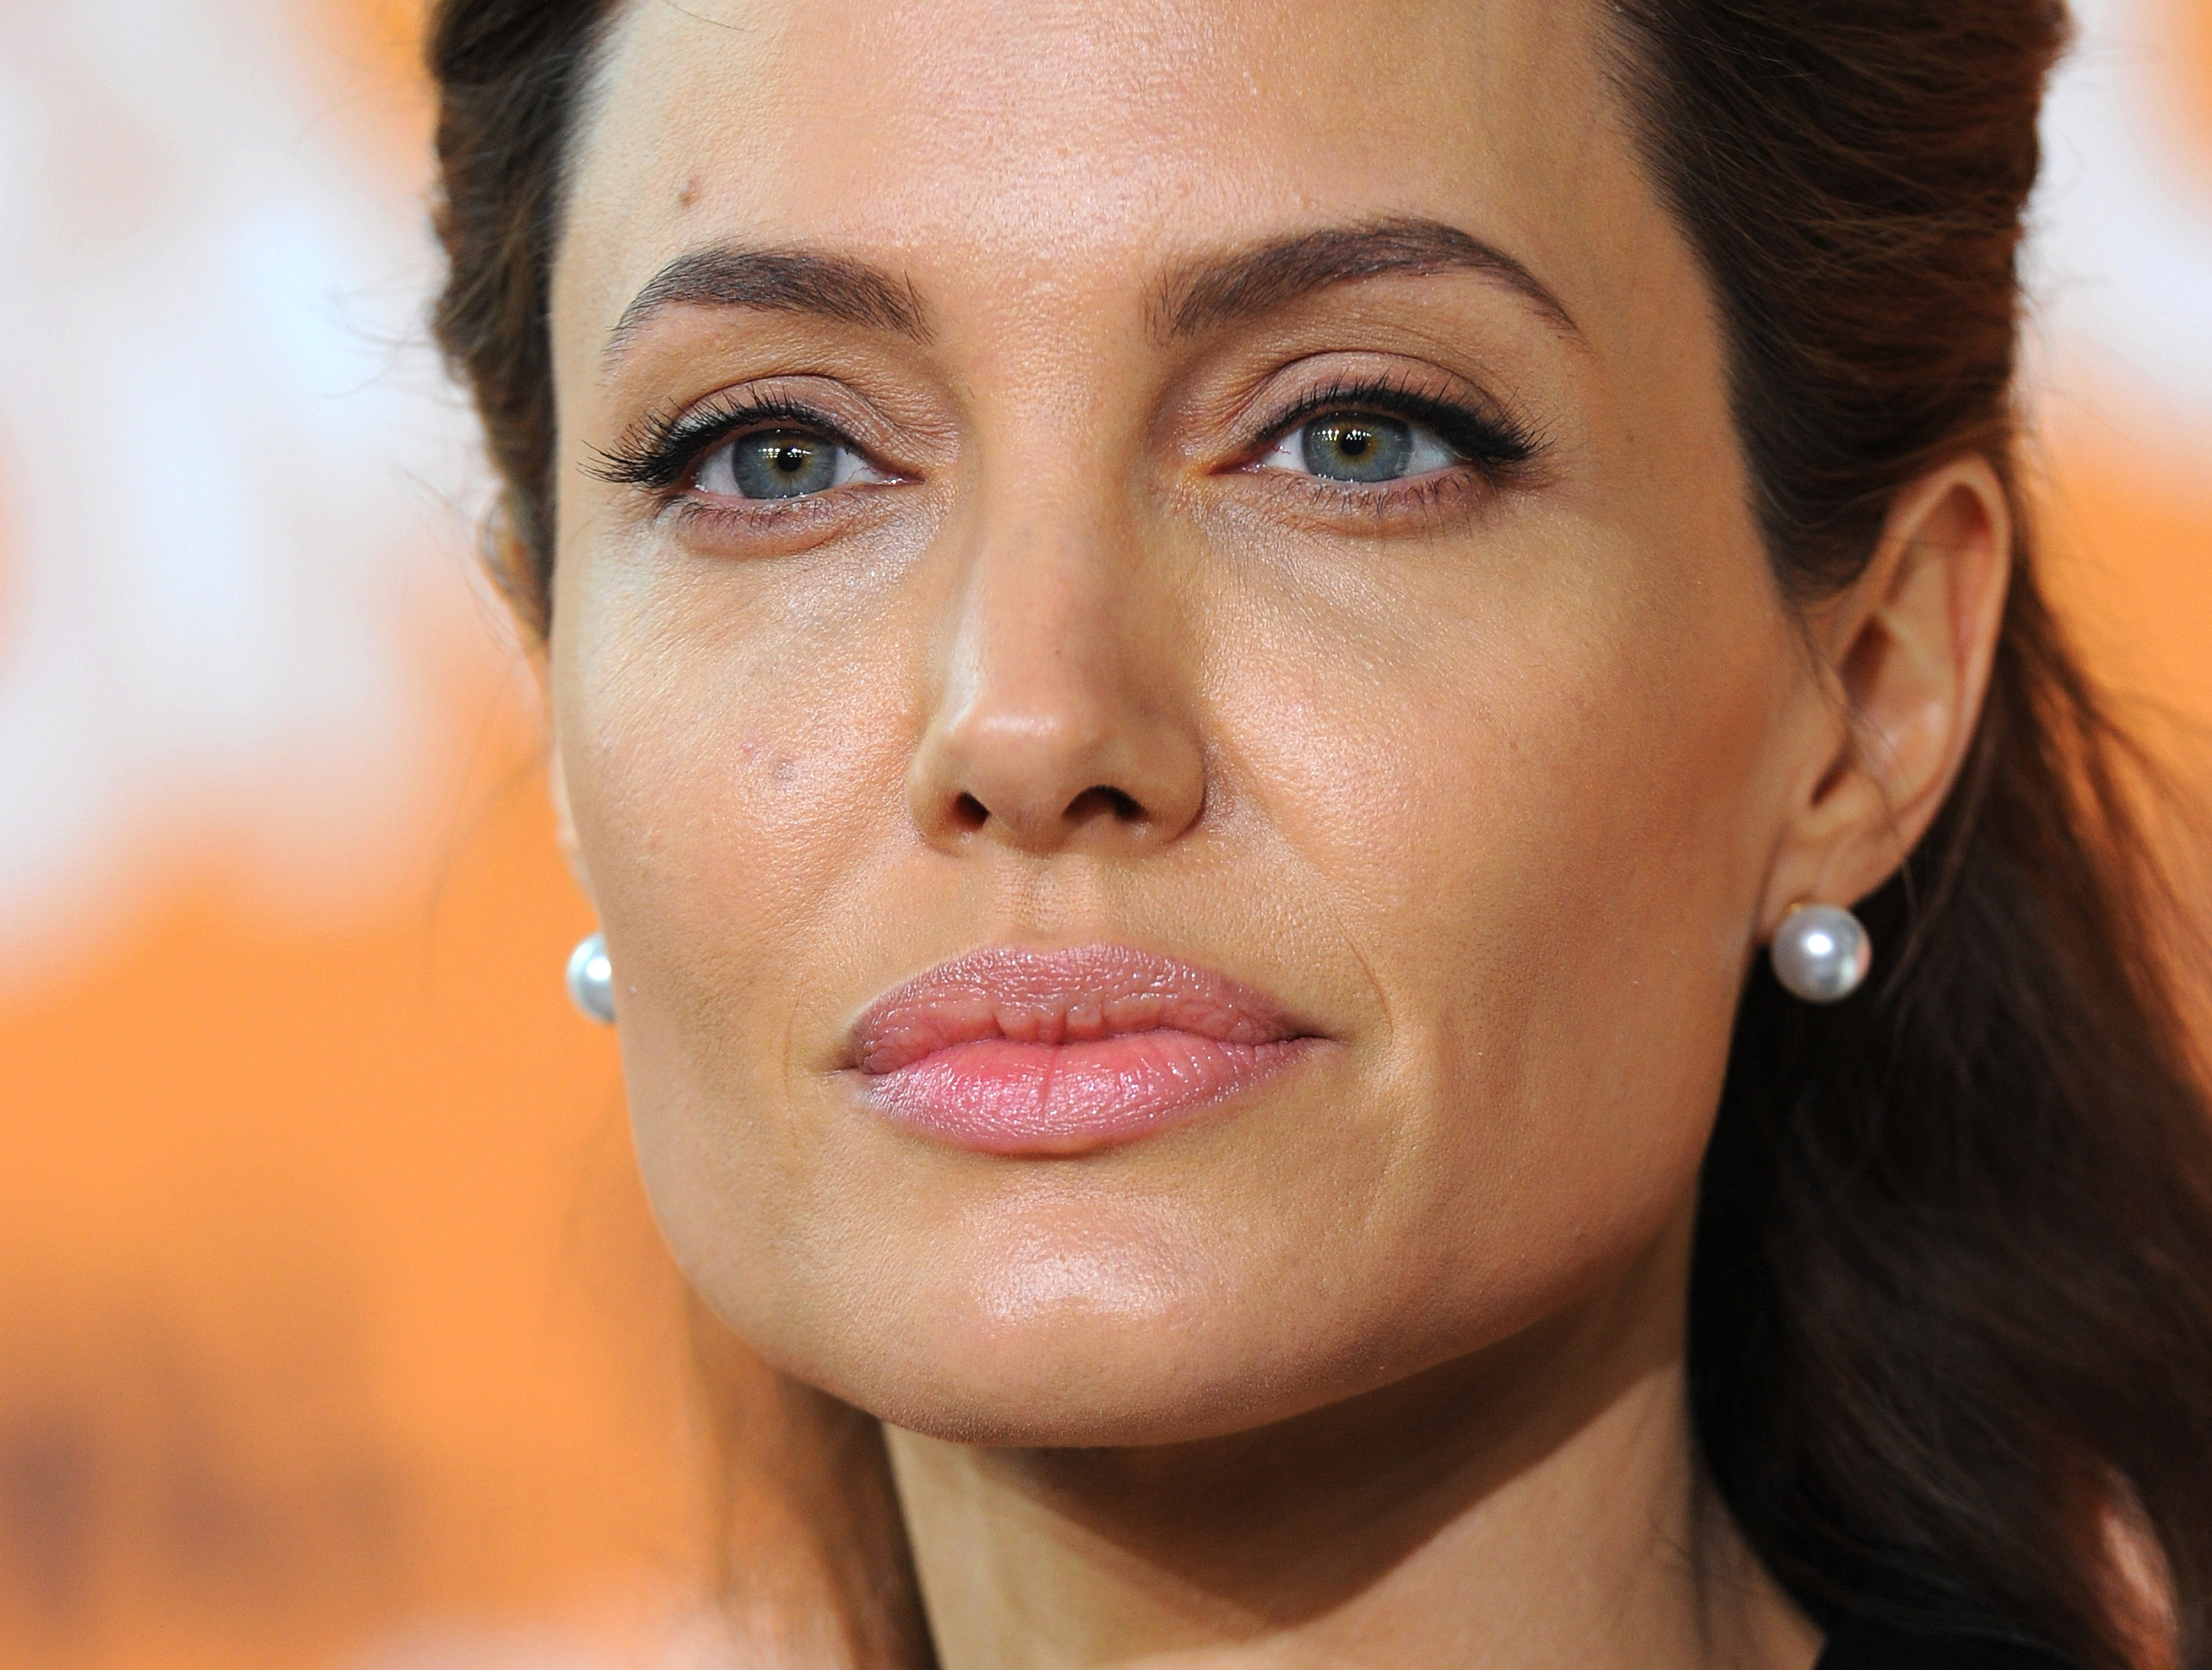 Angelina Jolie Reveals Shes Had Her Ovaries Removed